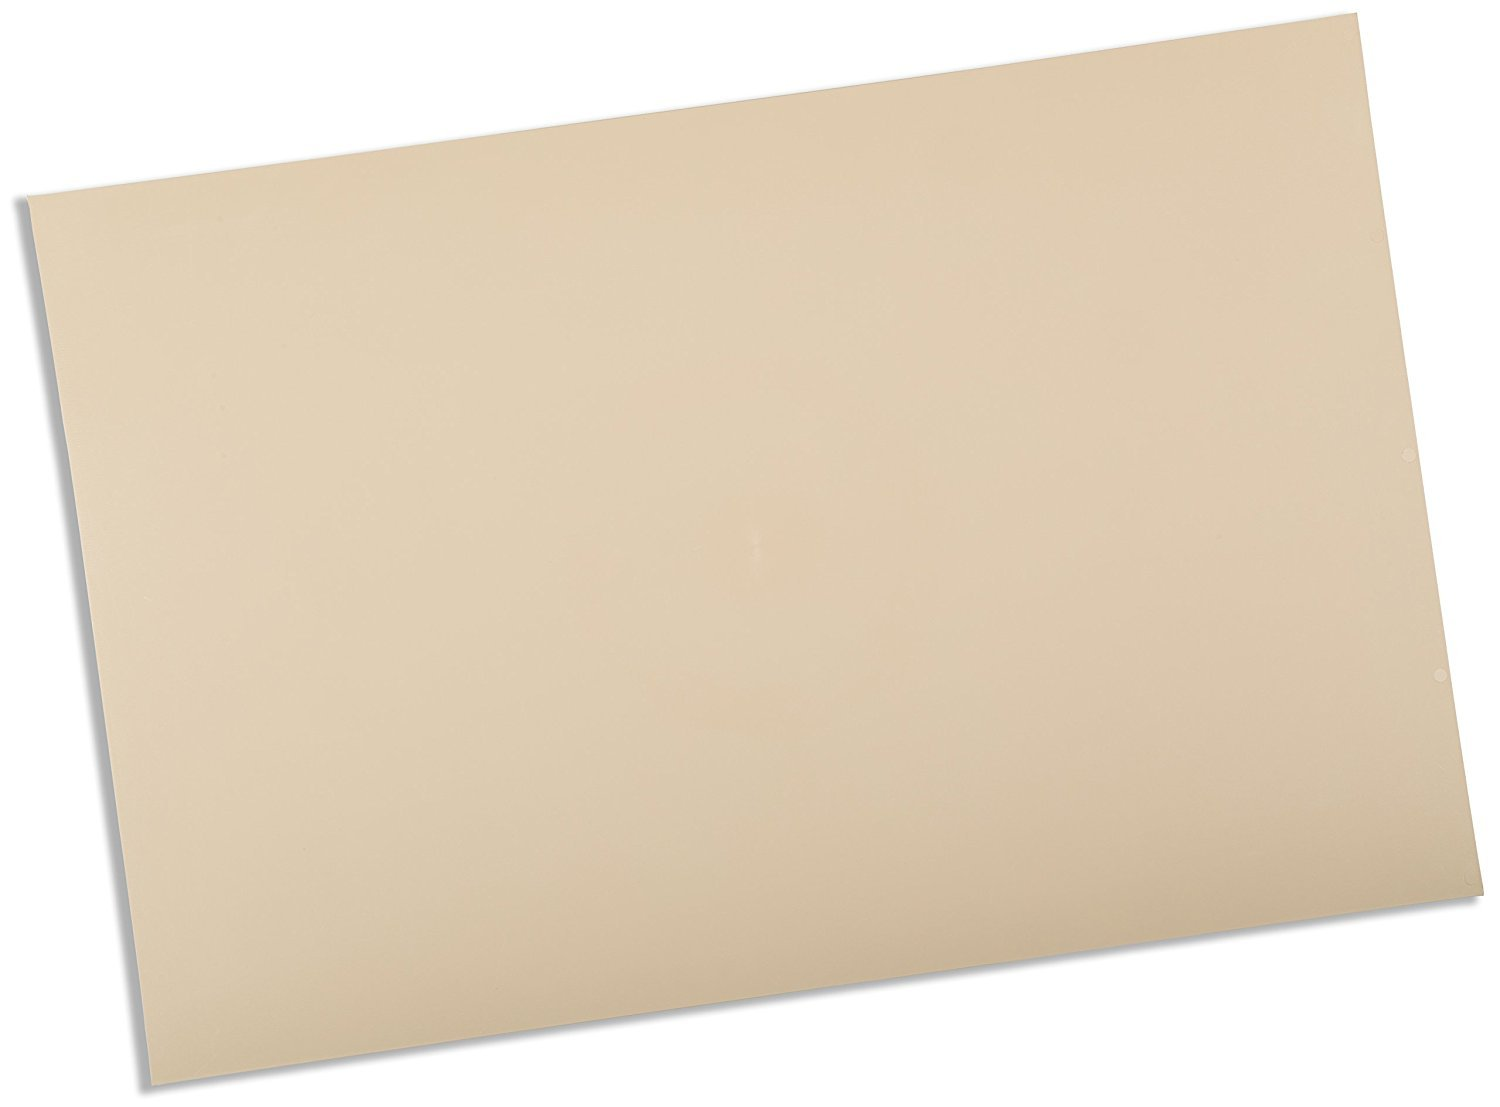 Rolyan Splinting Material Sheet, Ezeform, Beige, 1/8'' x 18'' x 24'', Solid, Single Sheet